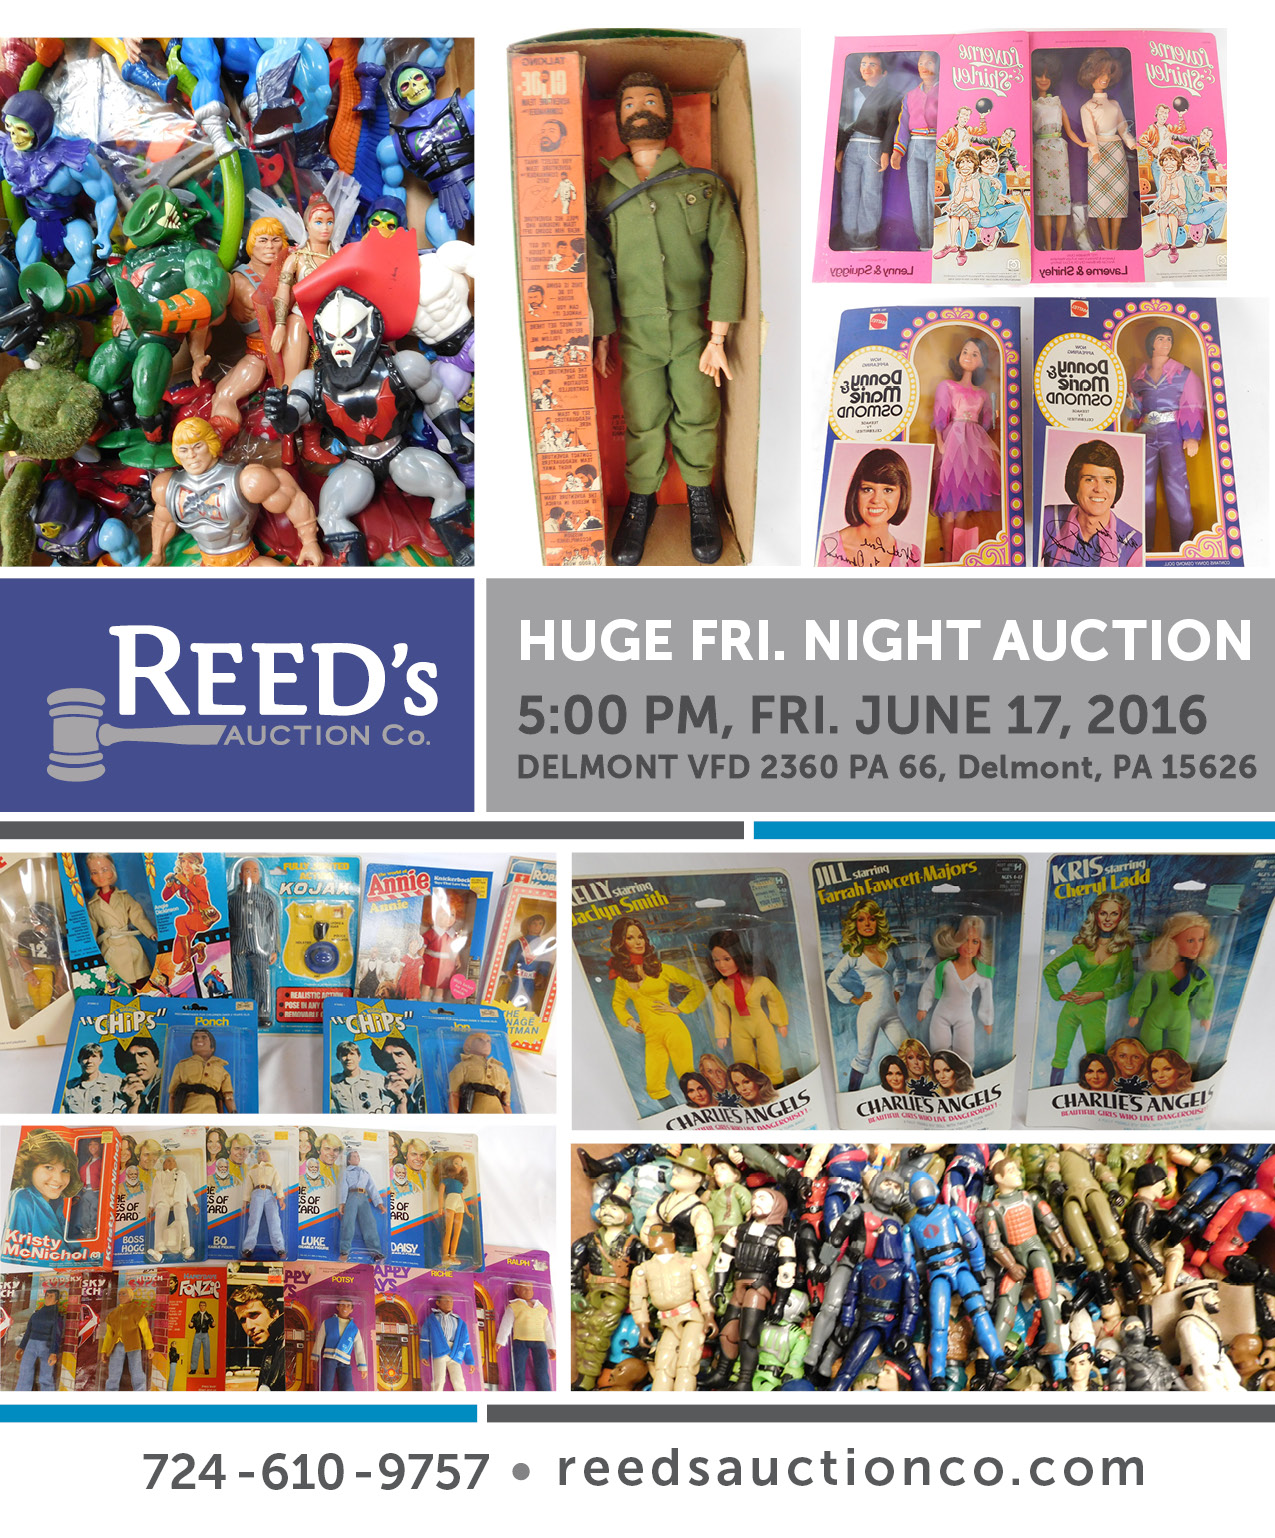 FB Reeds Auction 6-17-16.jpg